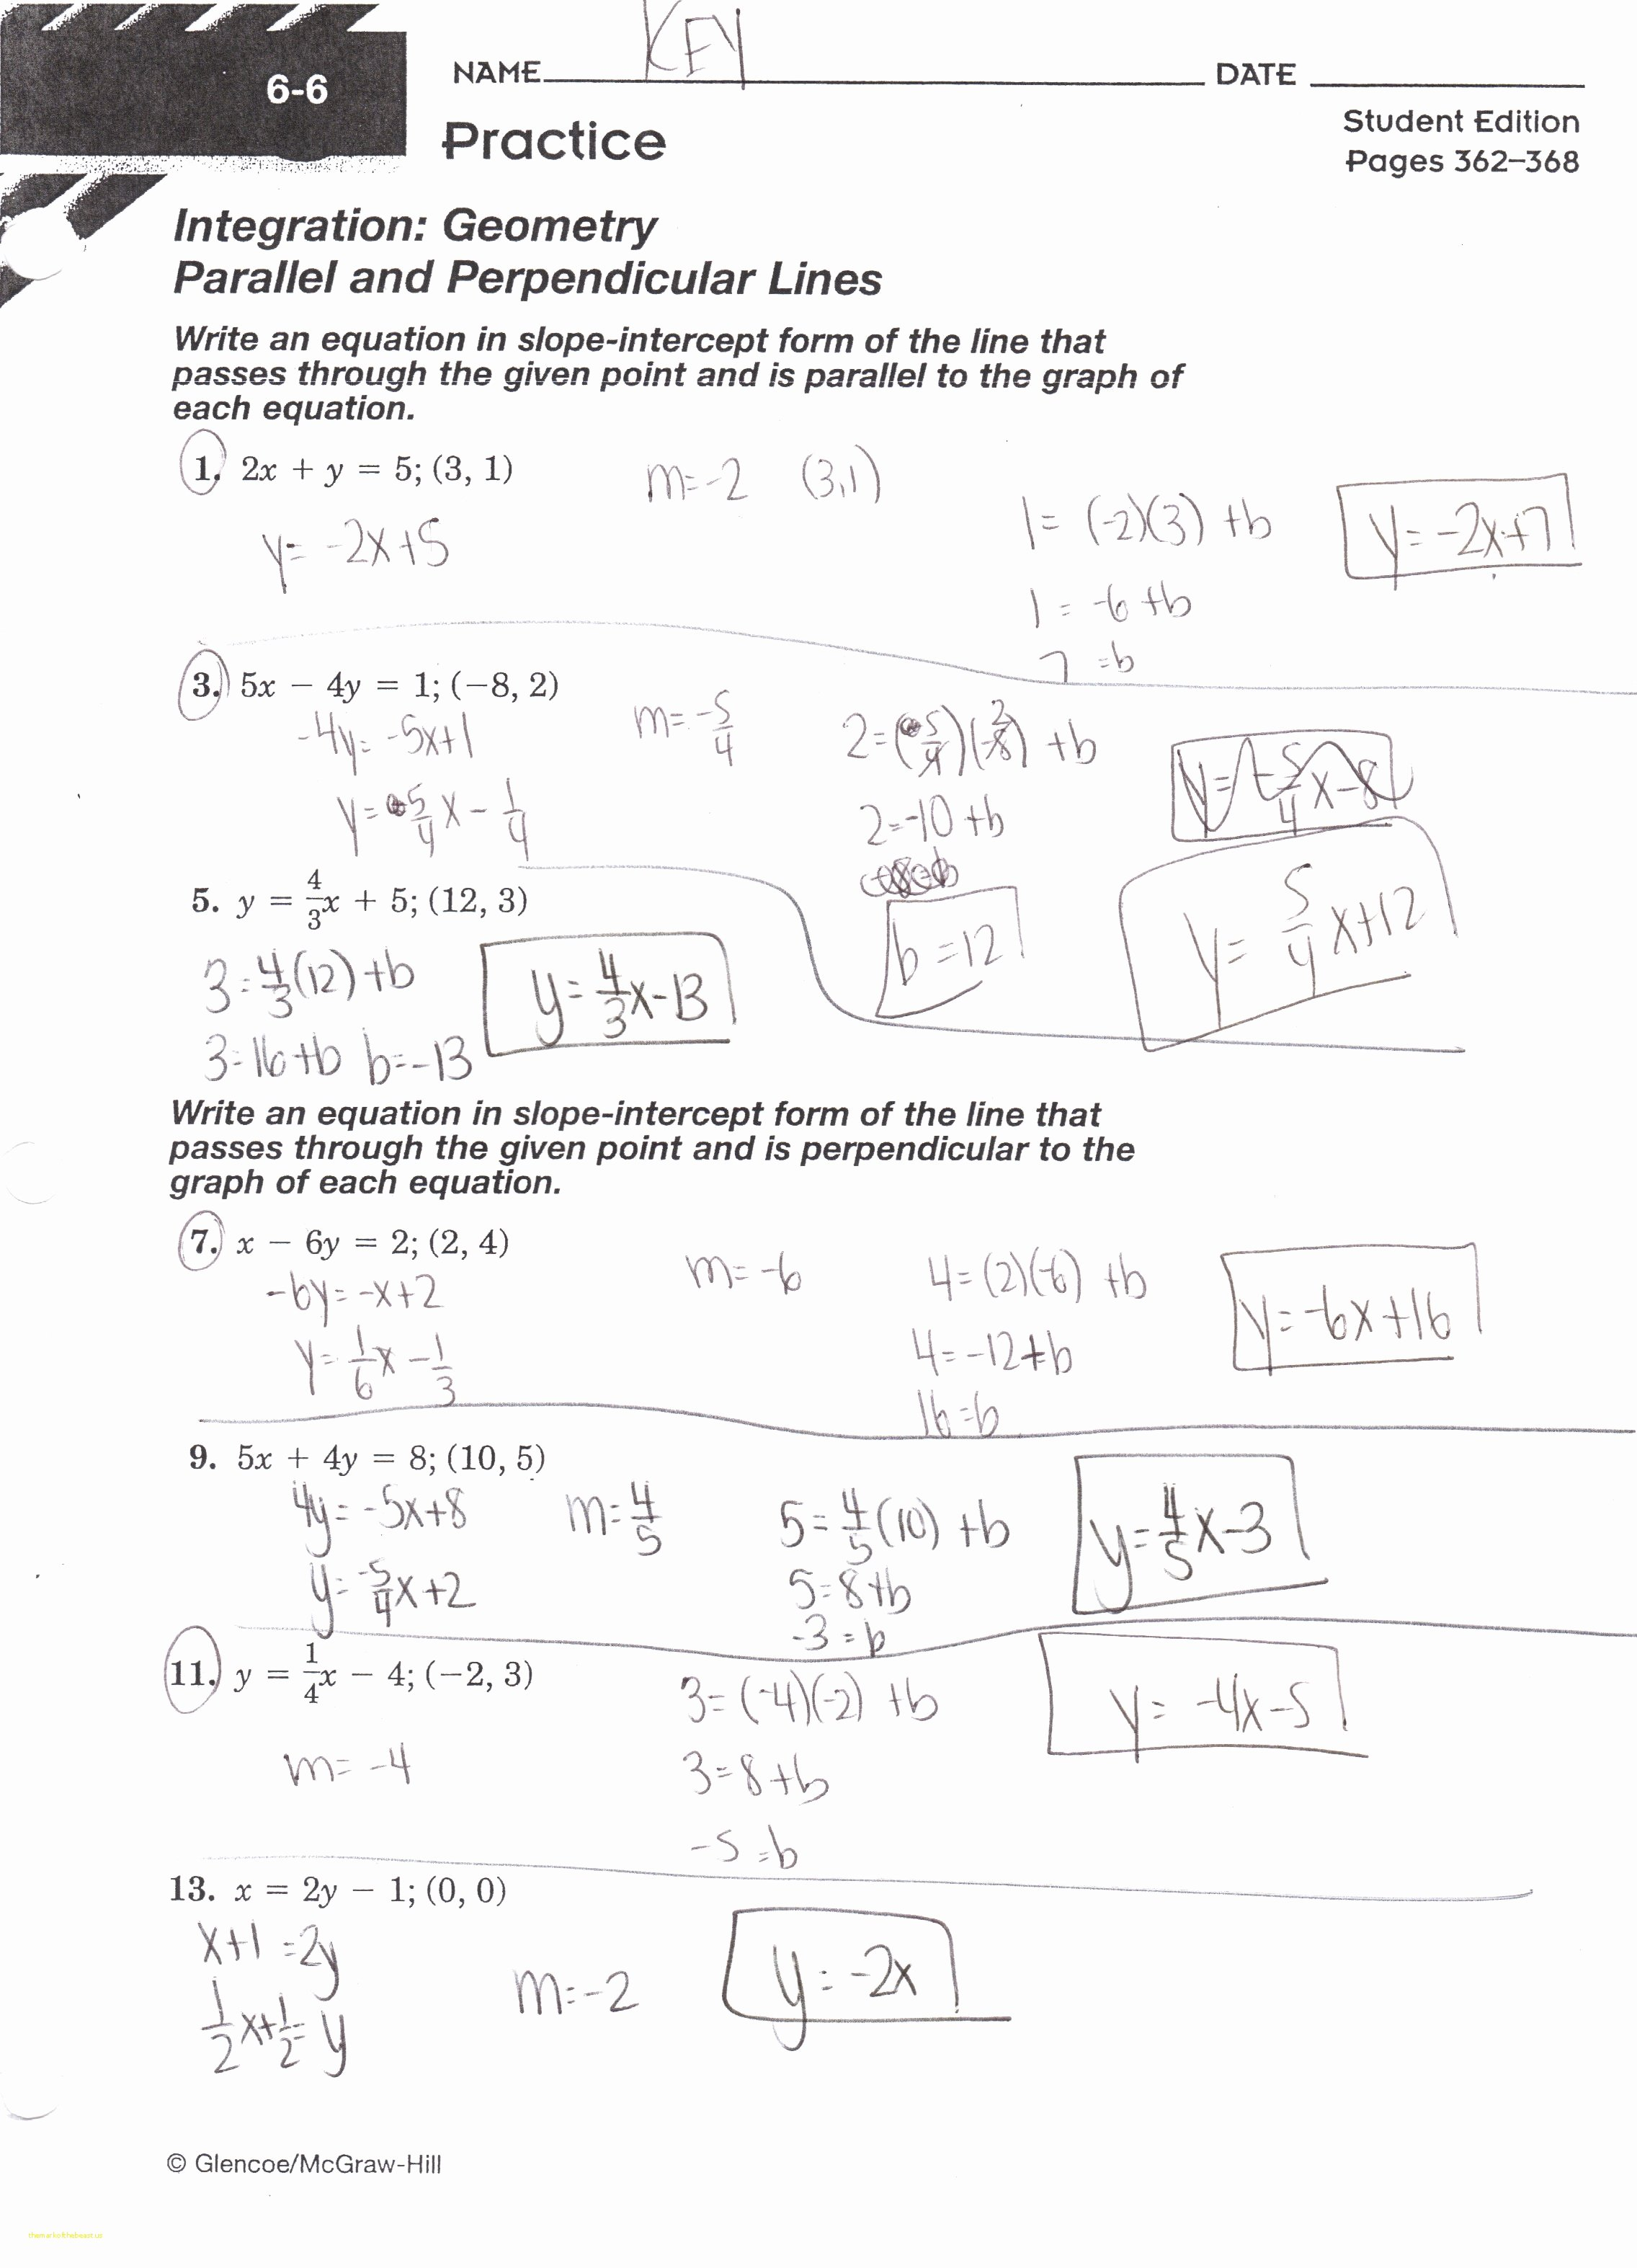 Linear Equation Word Problems Worksheet Fresh Linear Equations Word Problems Worksheet with Answers